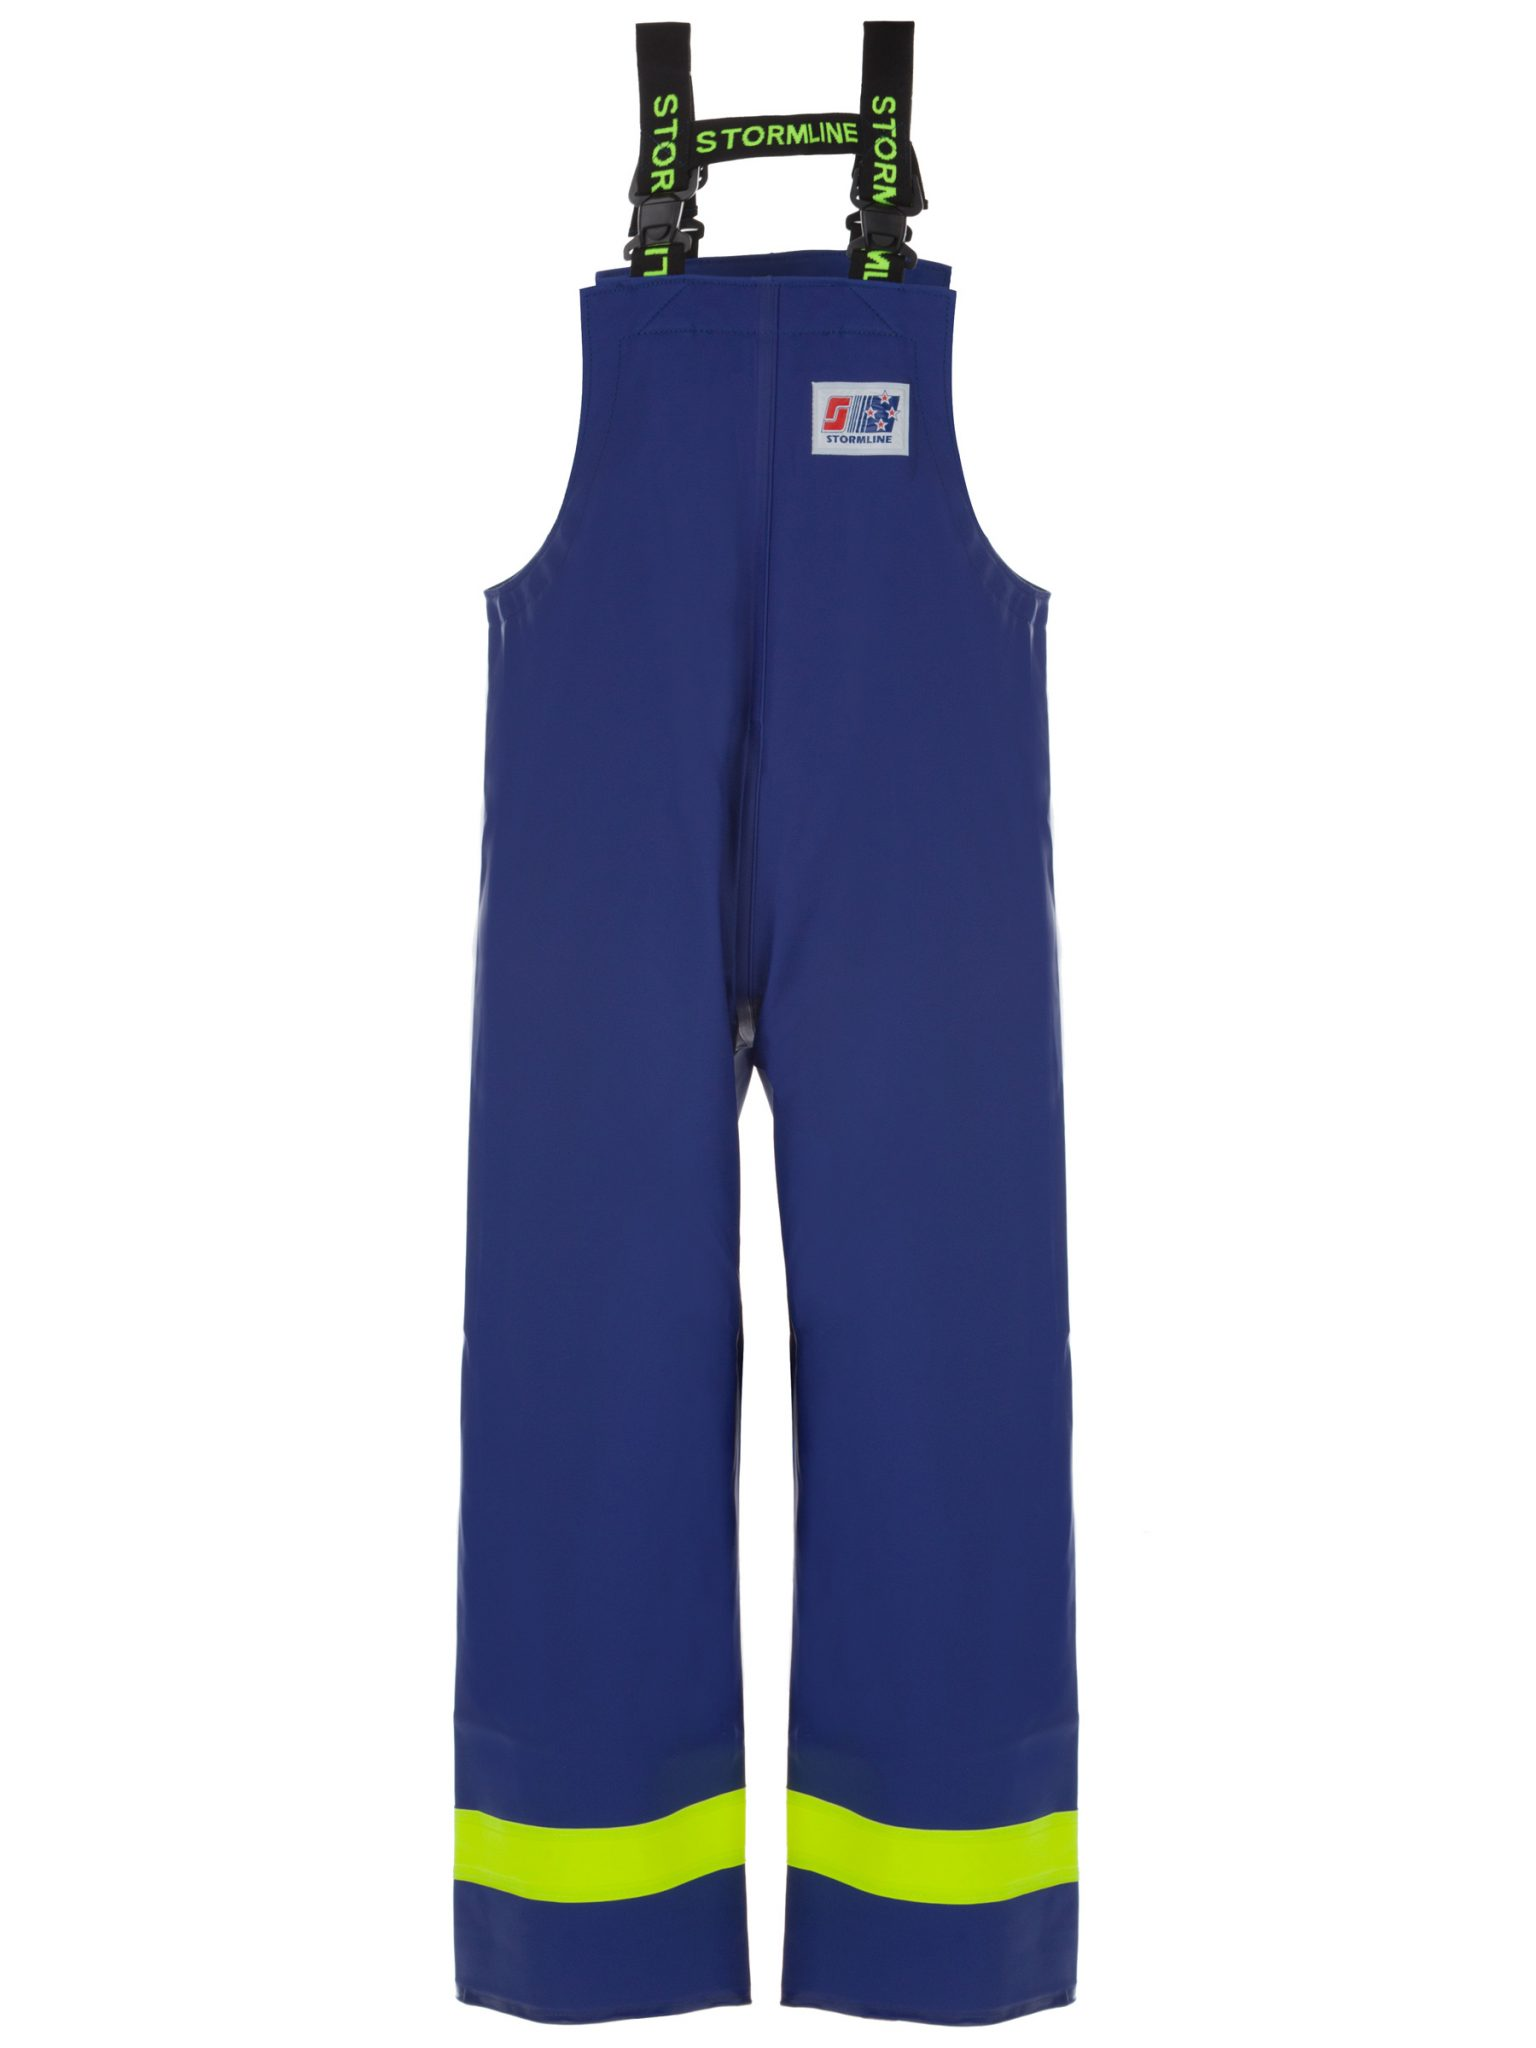 Captain's 600 Lightweight Foul Weather Pants